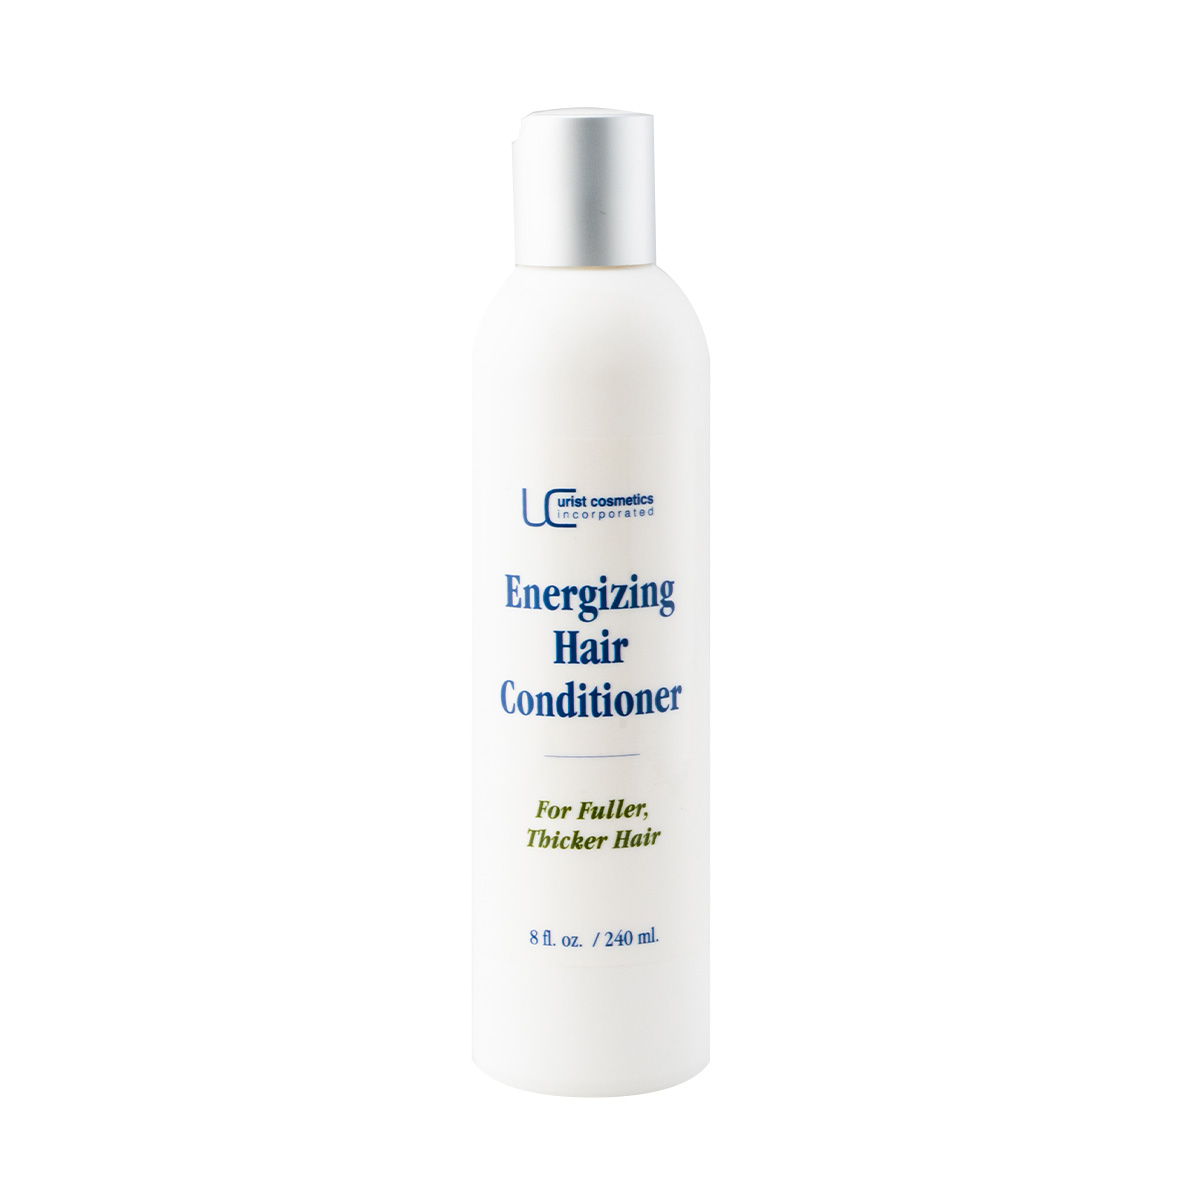 Energizing Hair Conditioner